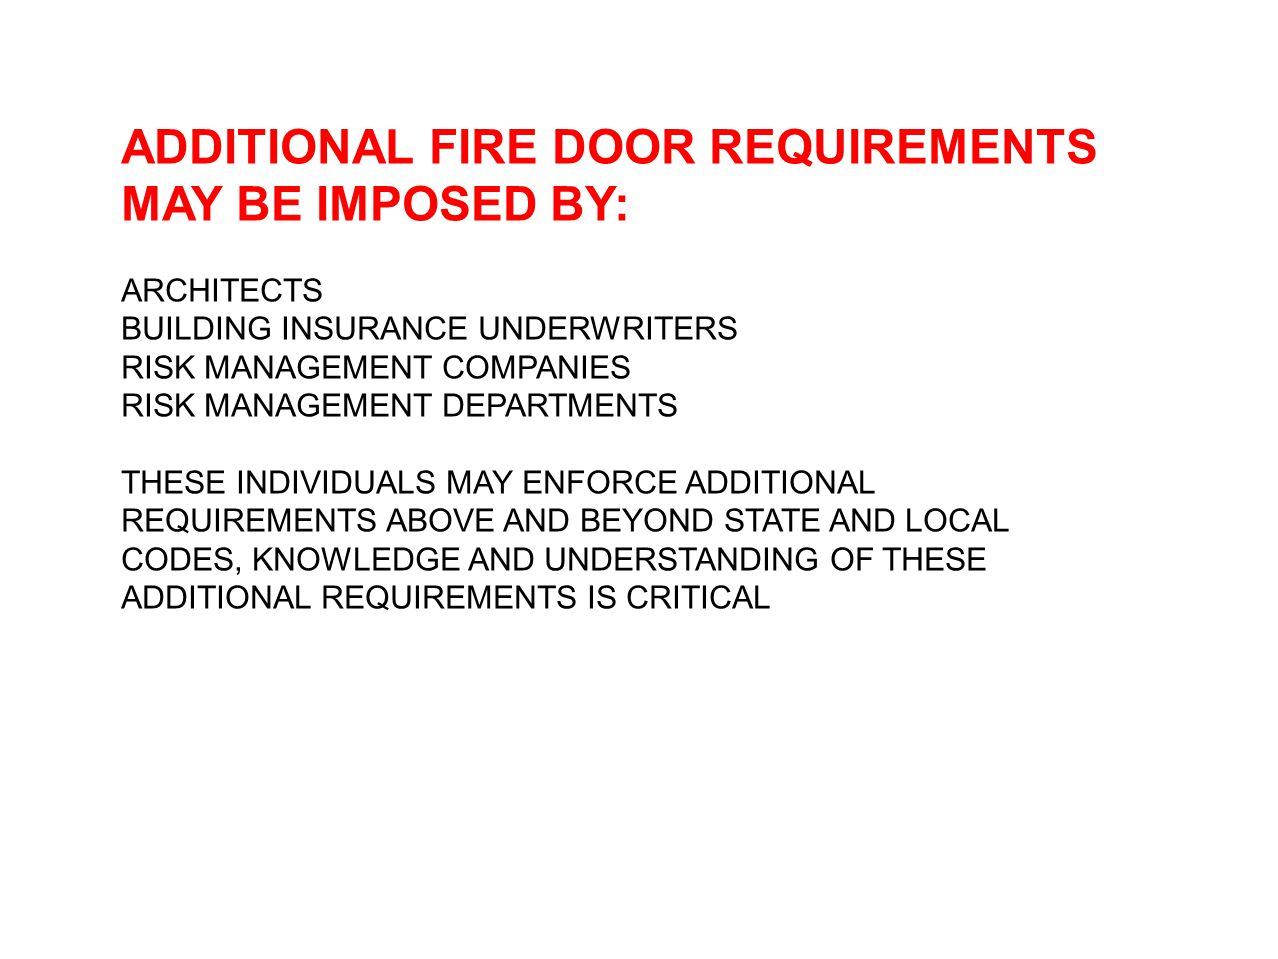 ADDITIONAL FIRE DOOR REQUIREMENTS MAY BE IMPOSED BY: ARCHITECTS BUILDING INSURANCE UNDERWRITERS RISK MANAGEMENT COMPANIES RISK MANAGEMENT DEPARTMENTS